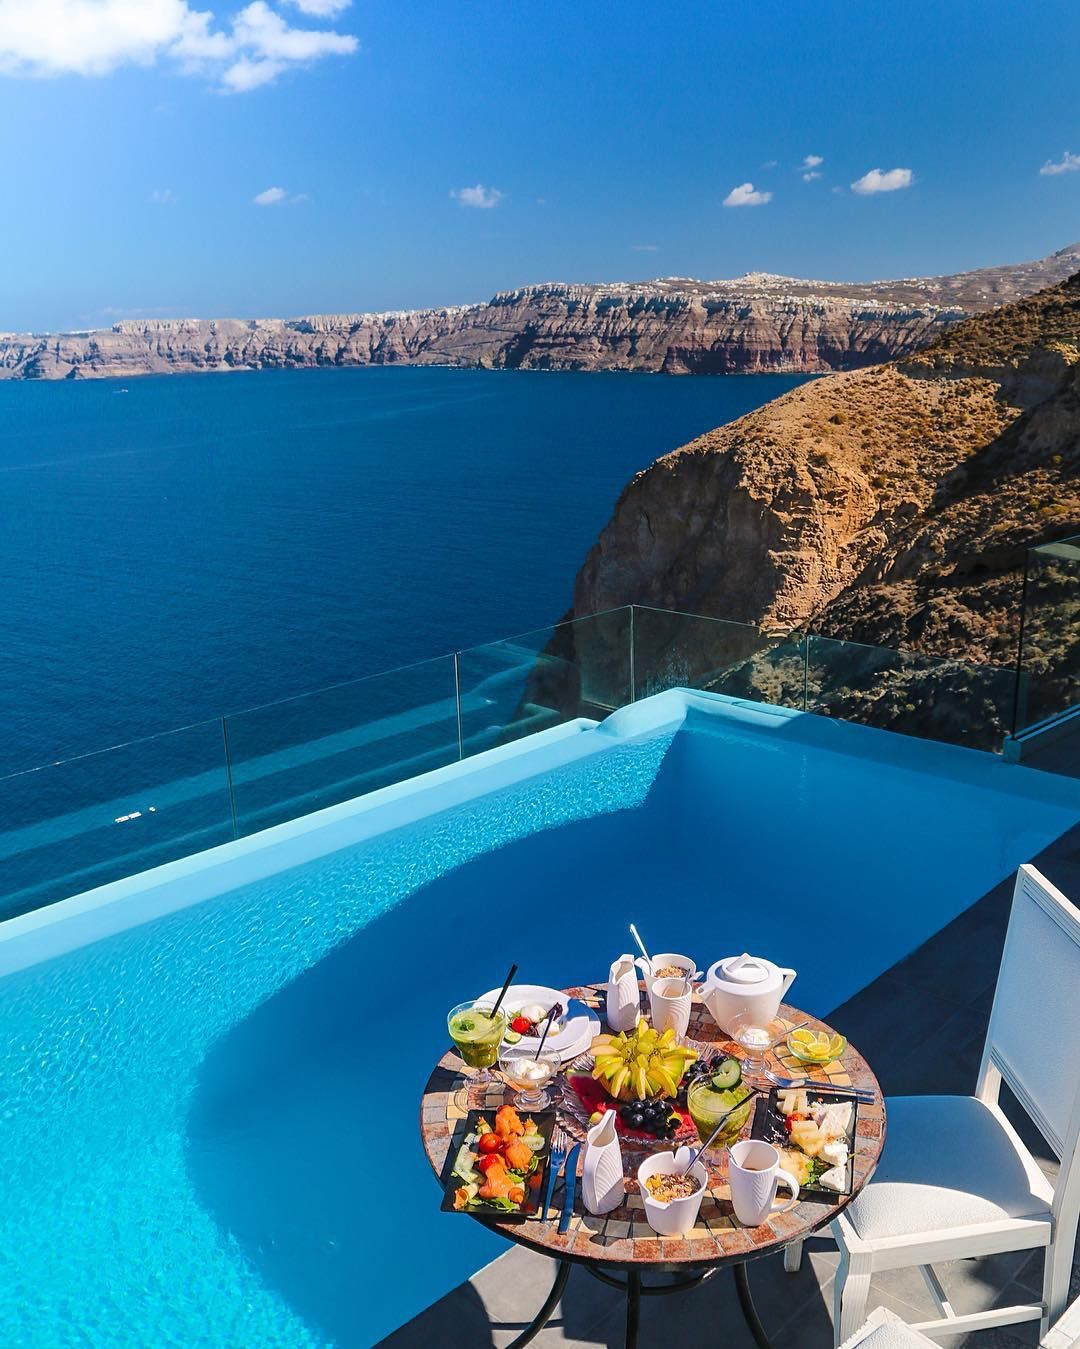 Breakfast_-_Astarte_Suites_Luxury_Hotel_in_Santorini_island